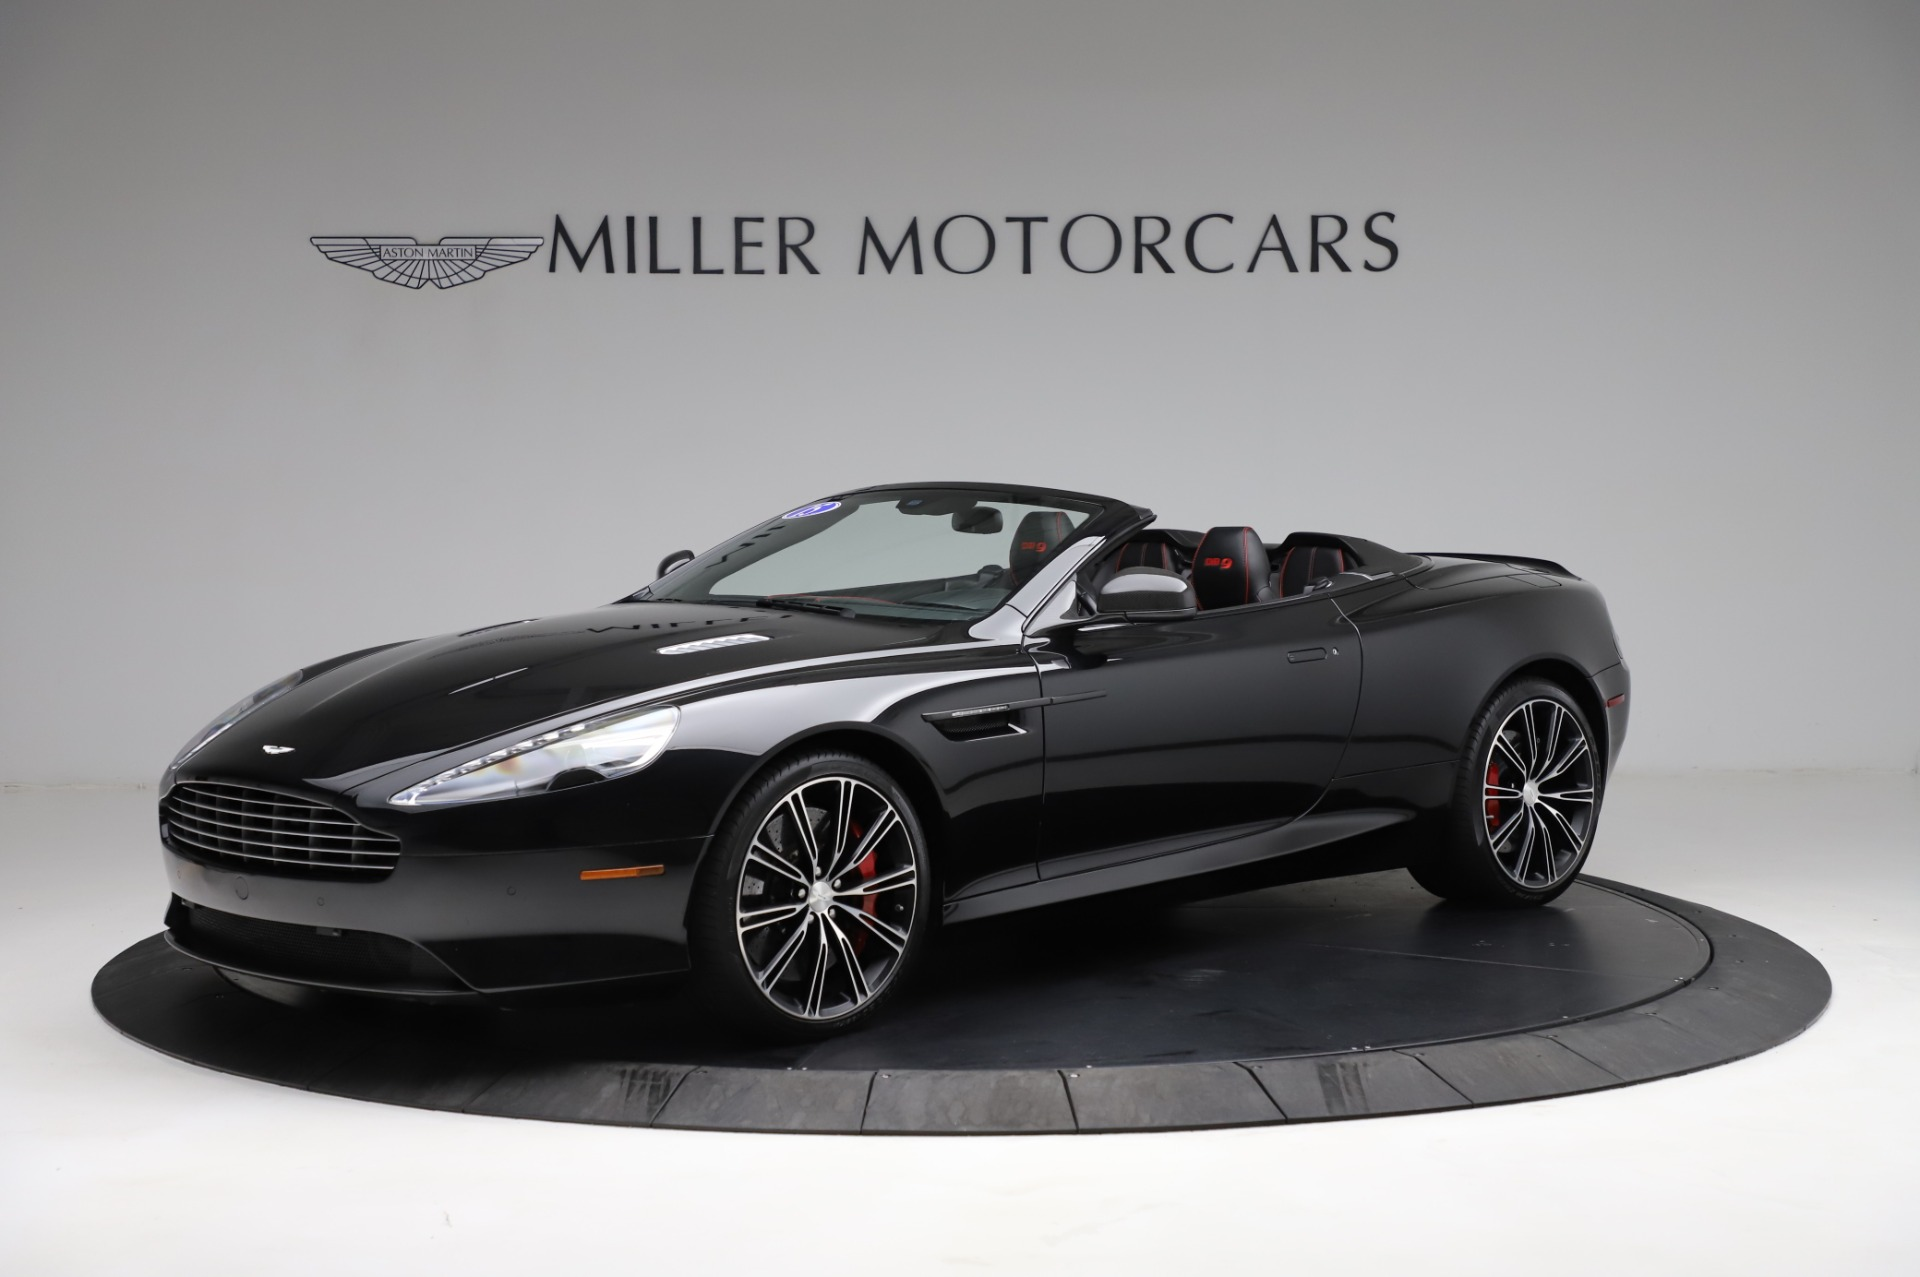 Used 2015 Aston Martin DB9 Convertible for sale Sold at Alfa Romeo of Greenwich in Greenwich CT 06830 1